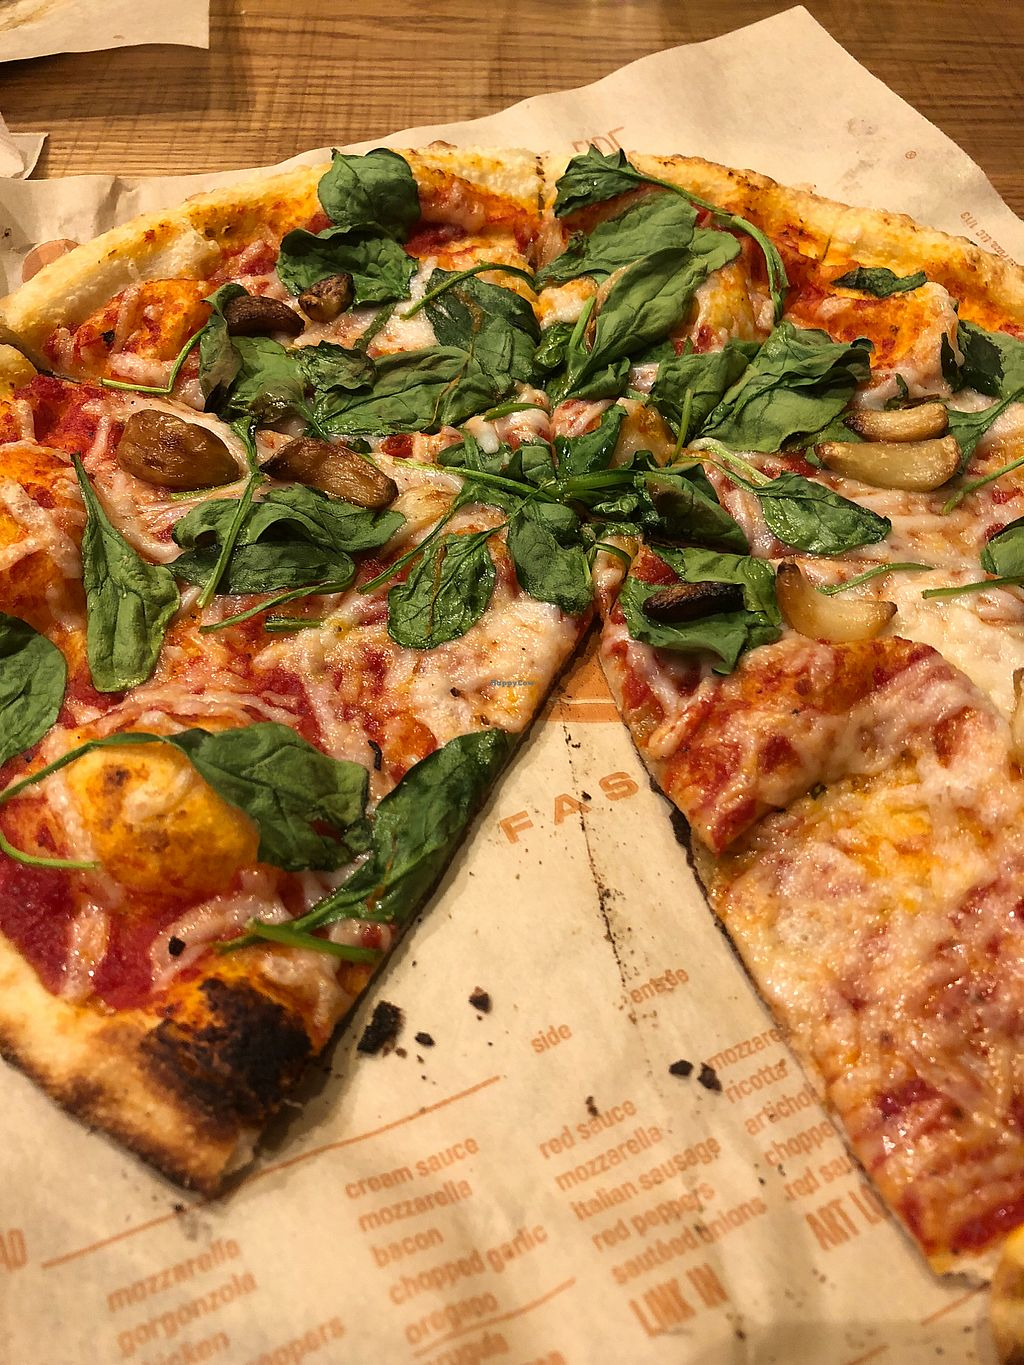 "Photo of Blaze Pizza - Town Center  by <a href=""/members/profile/BaileyKnighton"">BaileyKnighton</a> <br/>Vegan cheese w/ spinach and roasted garlic  <br/> January 17, 2018  - <a href='/contact/abuse/image/109659/347380'>Report</a>"